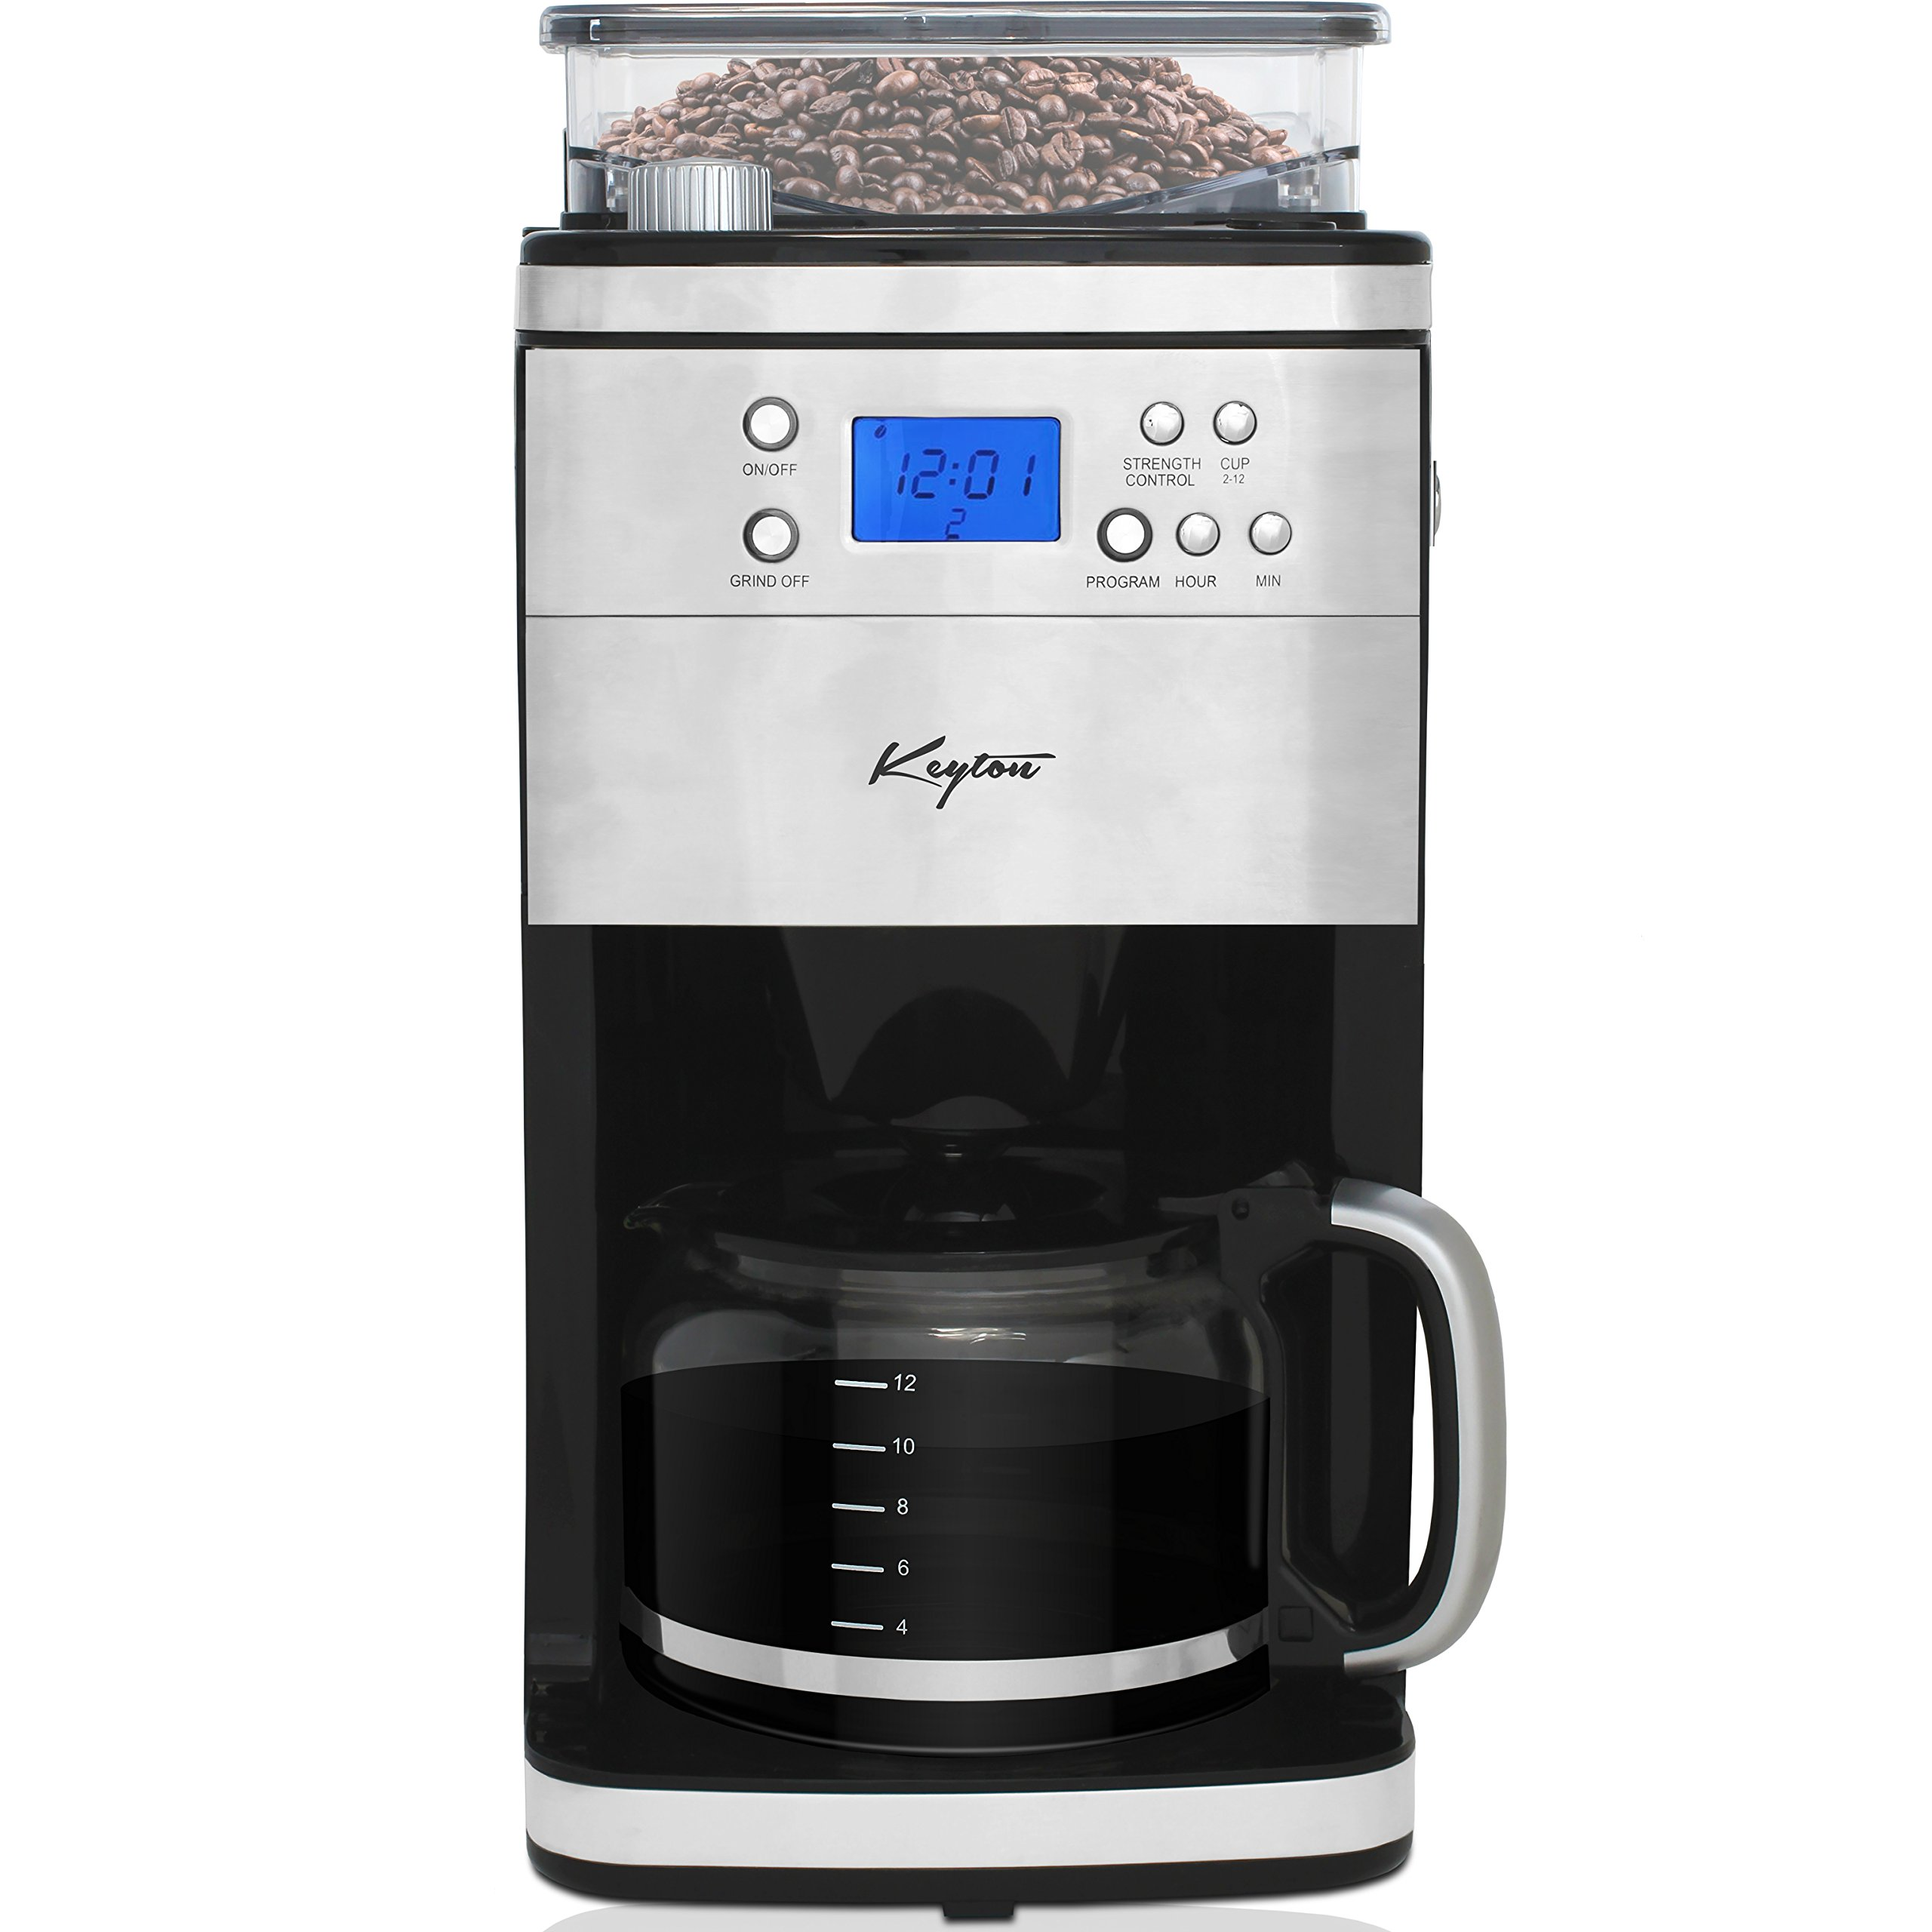 Grind and Brew Automatic Drip Coffee Maker with Multiple Coarse to Fine Options & Multi Brewing Modes and Settings - Stainless Steel - 12 Cup - By Keyton by Keyton